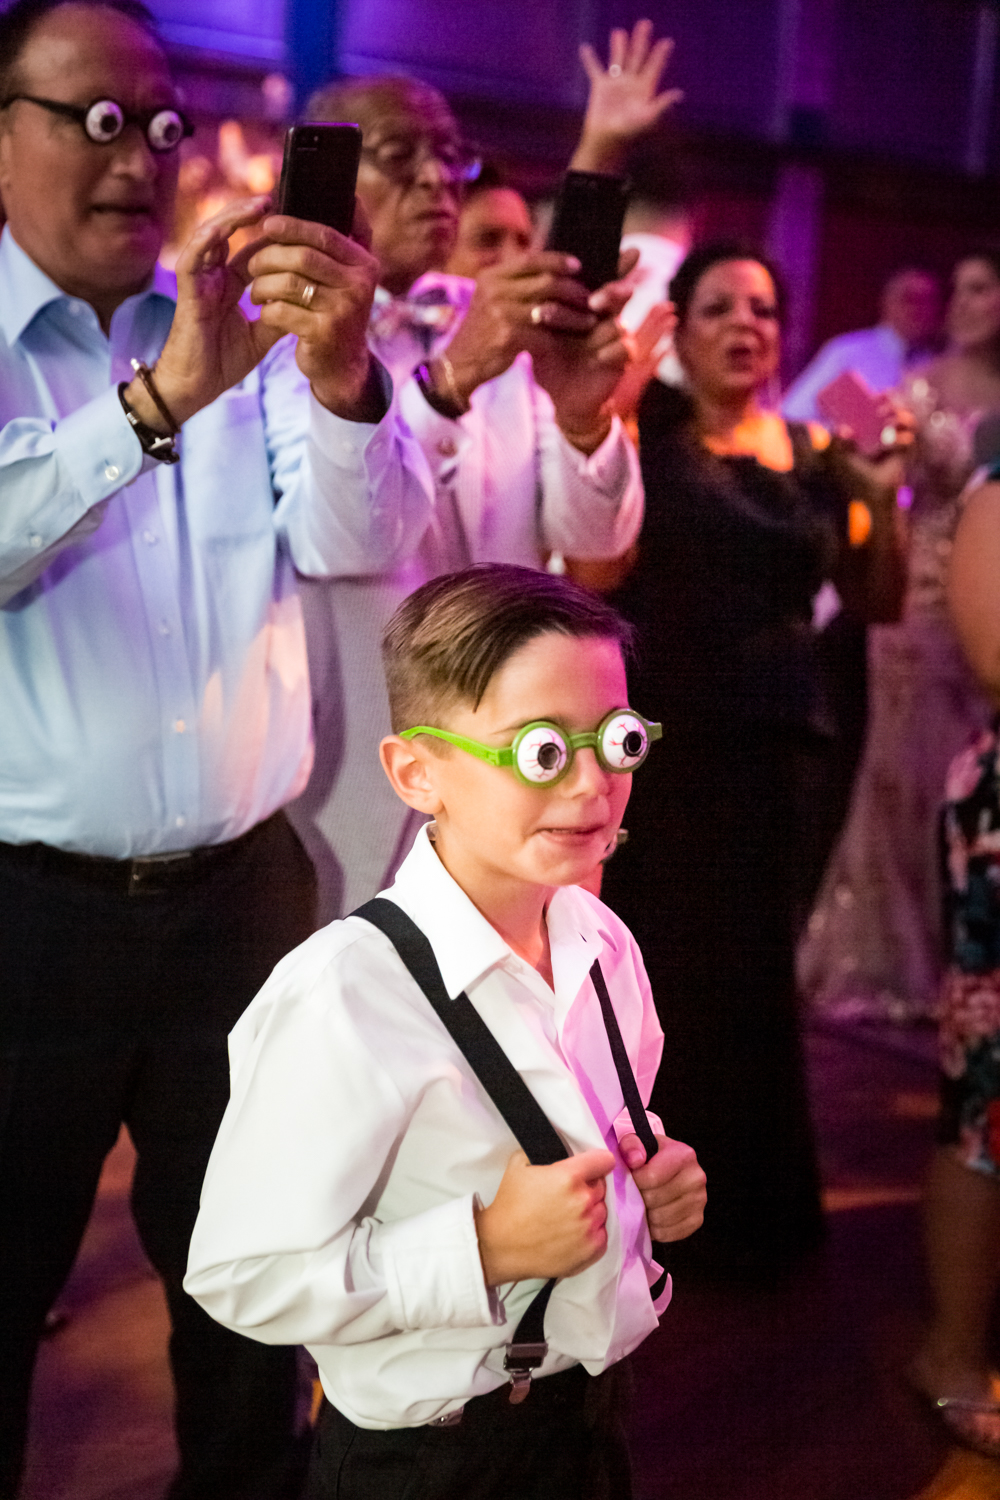 Little boy with fake eye glasses for an article on Bronx Zoo wedding venue updates